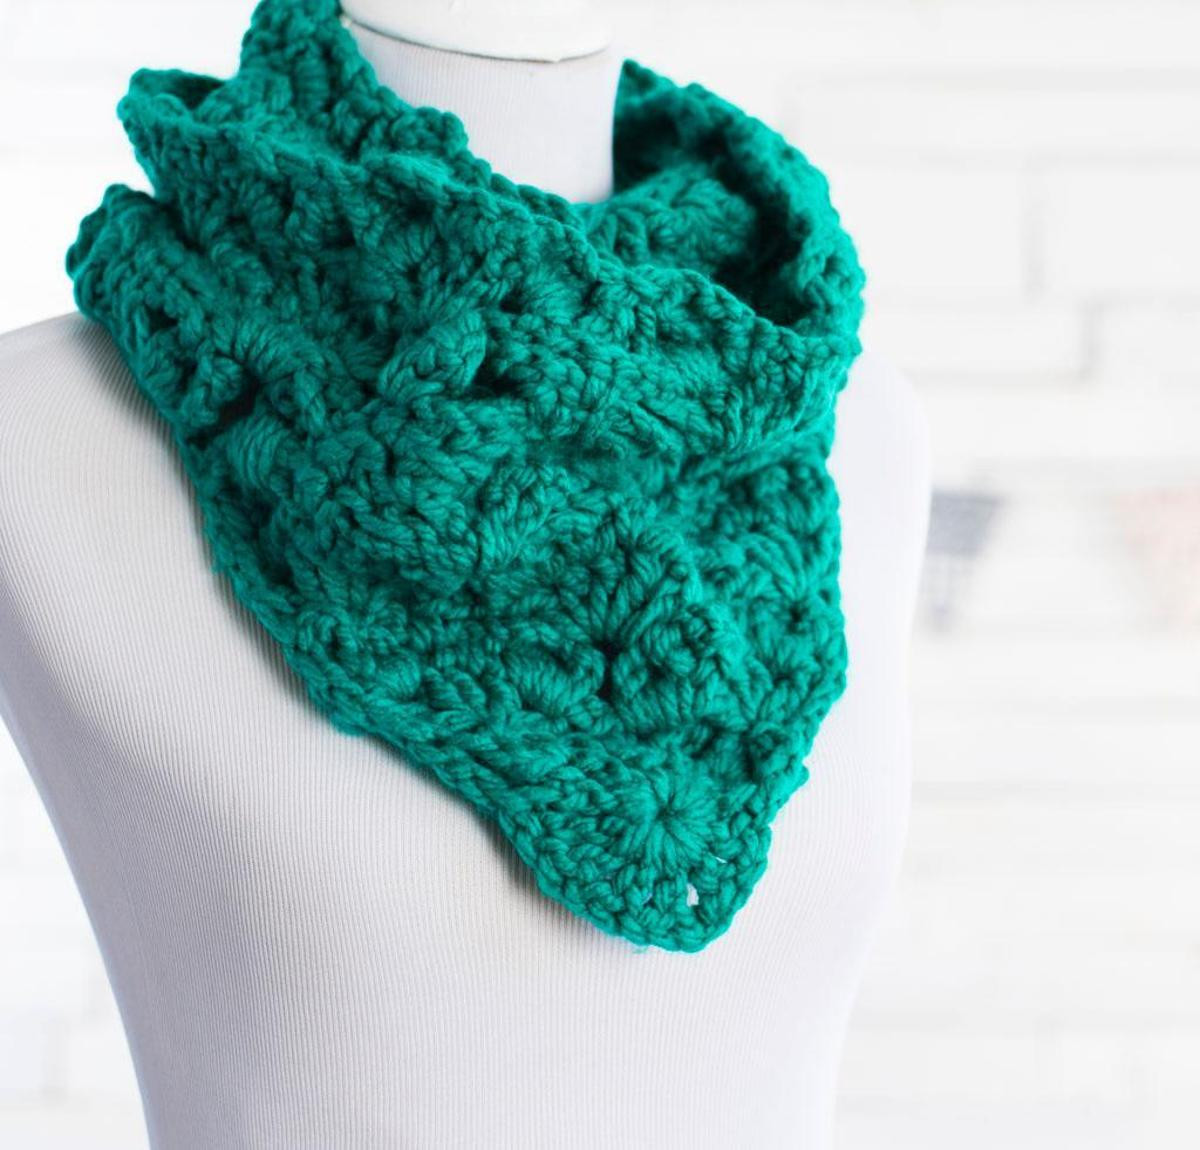 Crochet Kits Awesome Cowl and Fingerless Mitts Crochet Kit Of Amazing 46 Images Crochet Kits